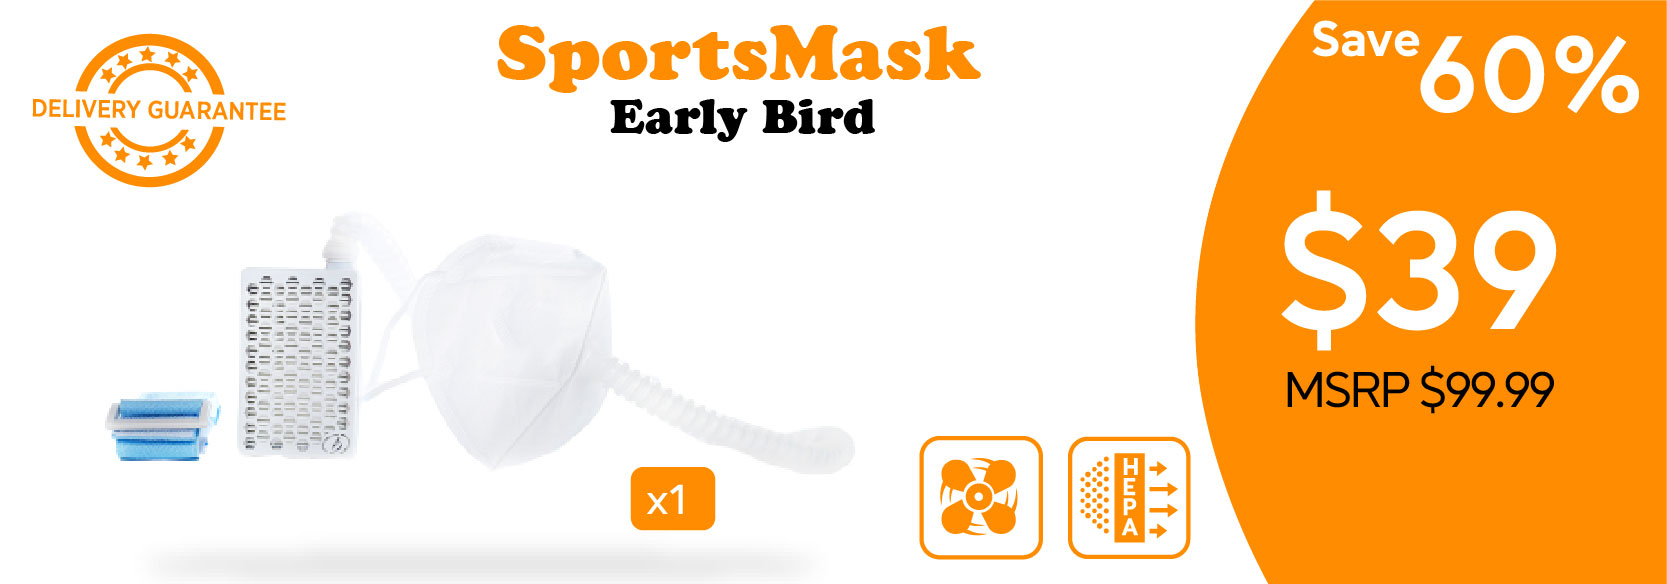 perk posters_Sports Mask Early Bird